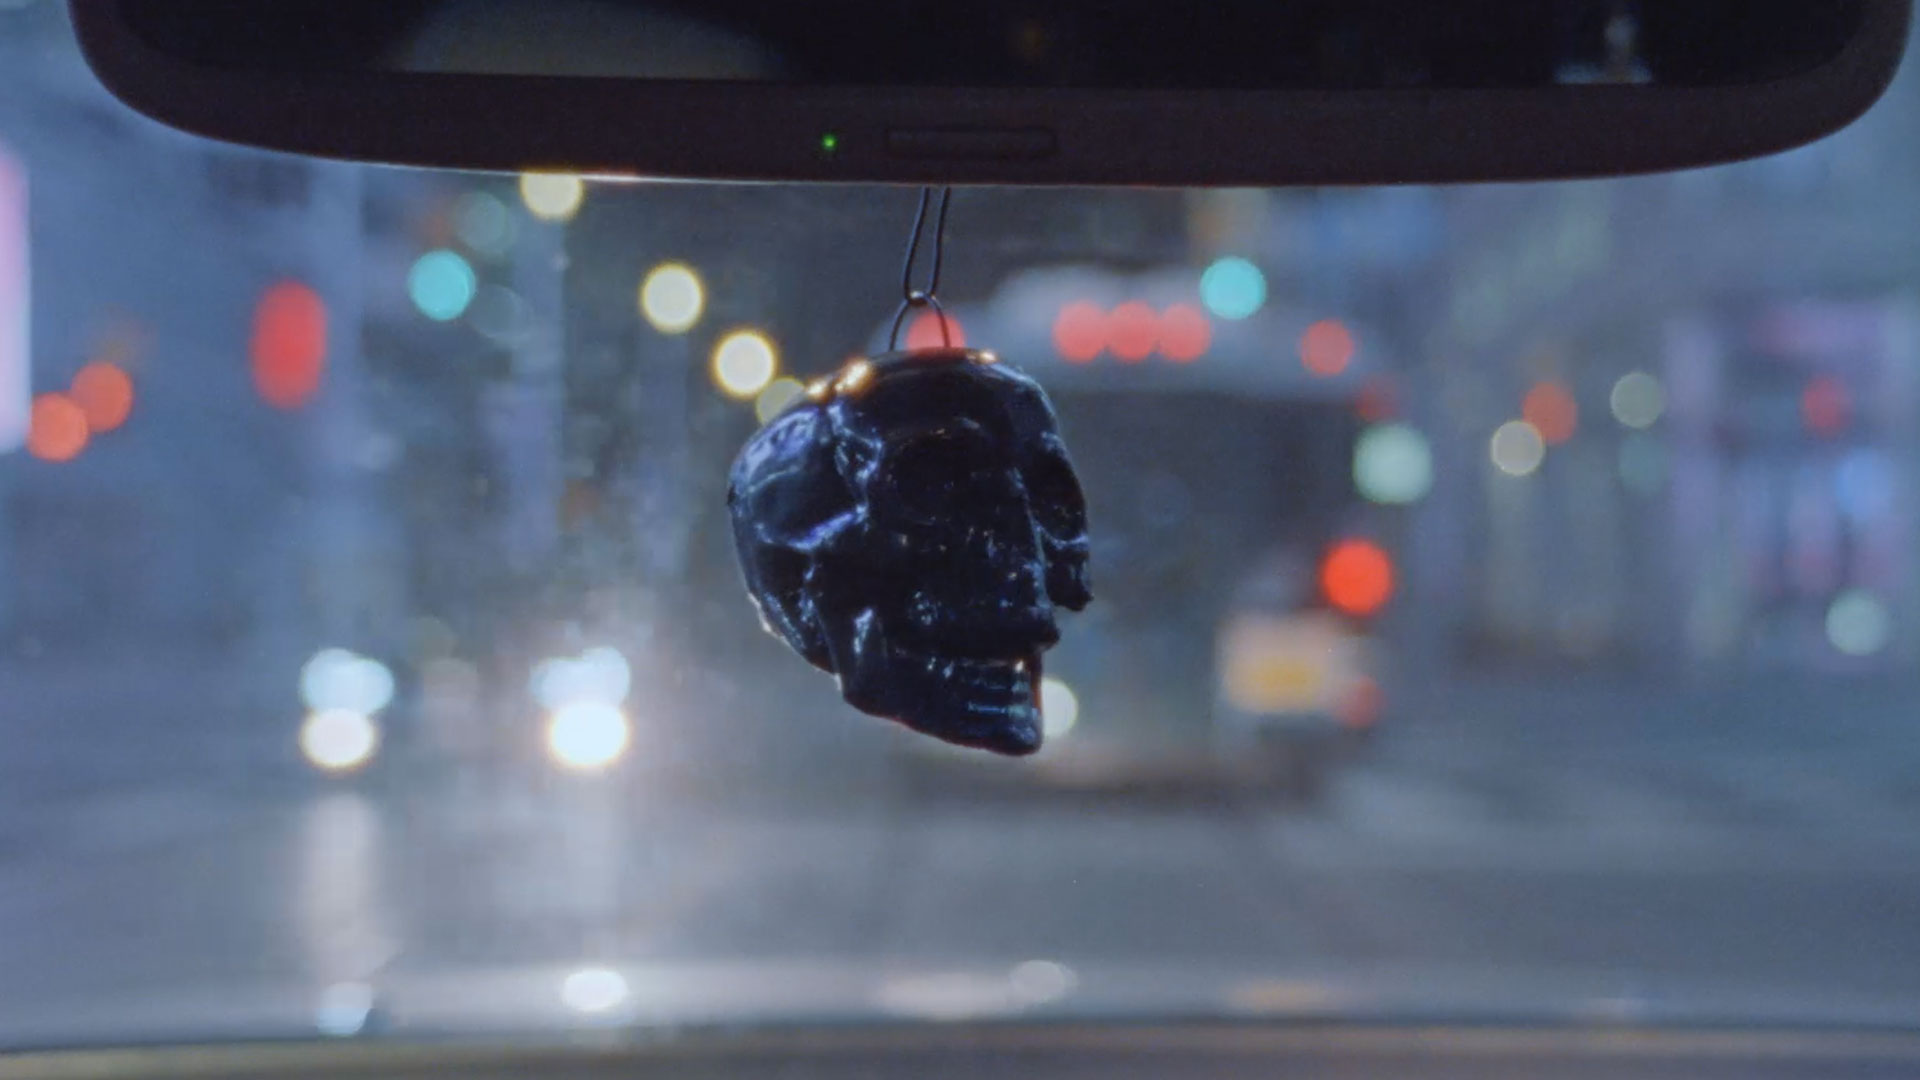 Metal skull hangs from the rearview mirror shot on a city street at night